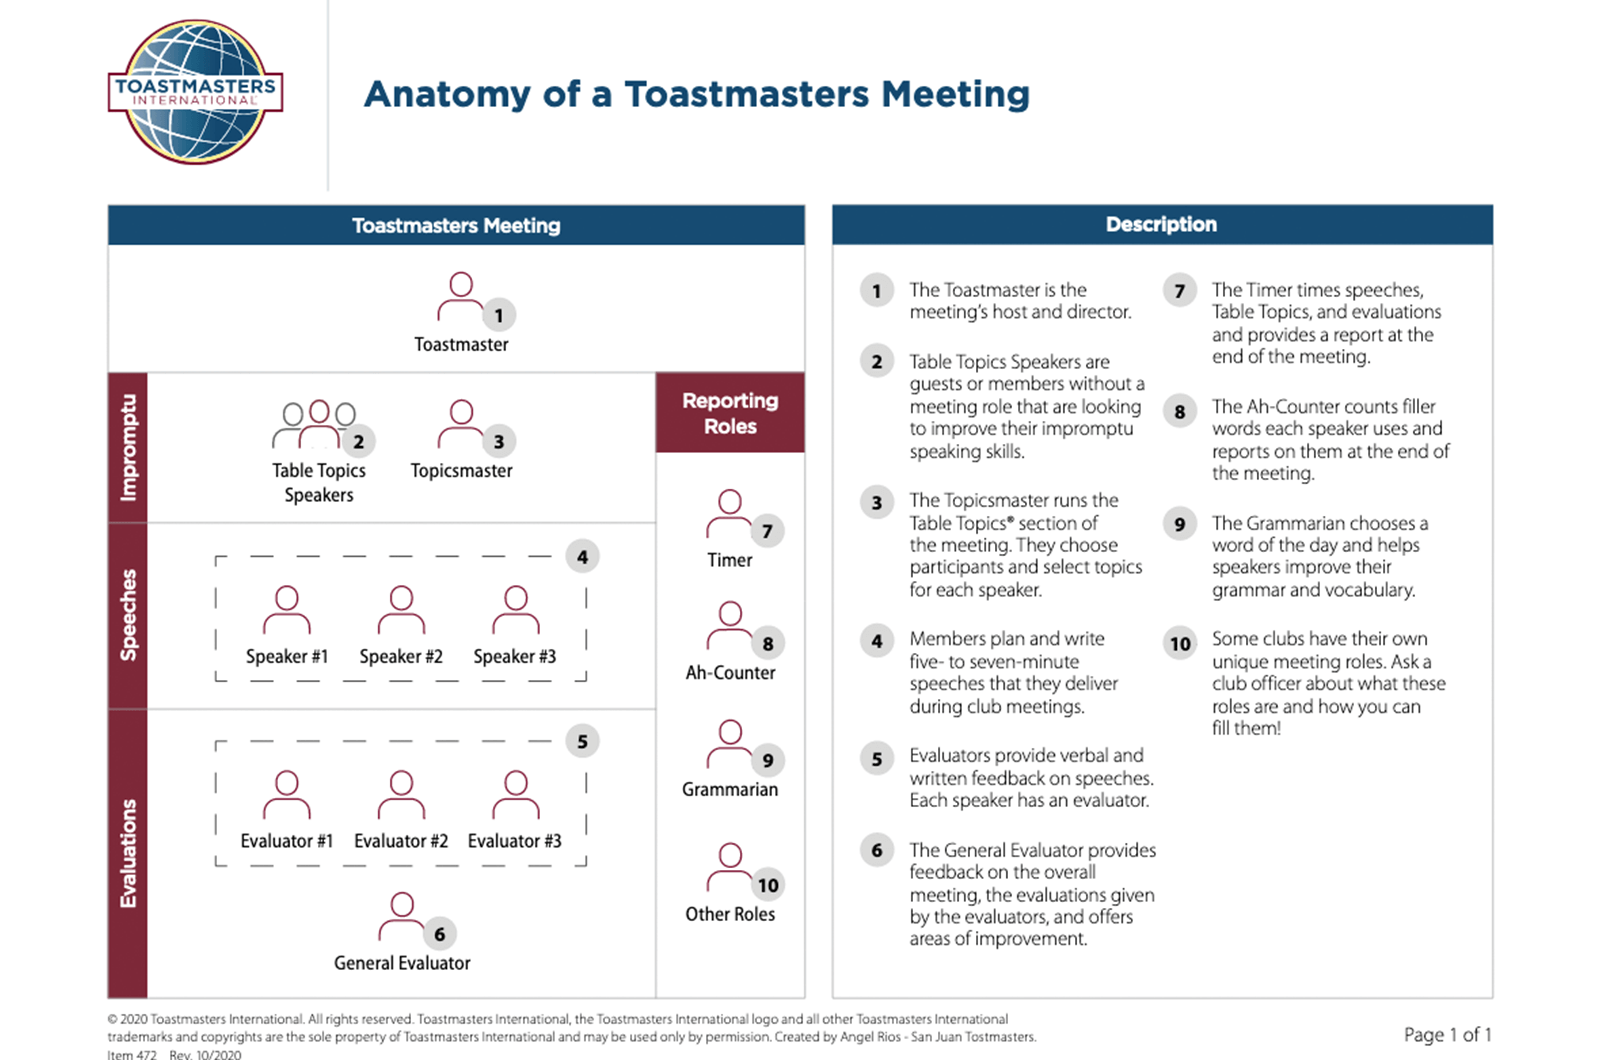 Anatomy of a Toastmasters Meeting data sheet